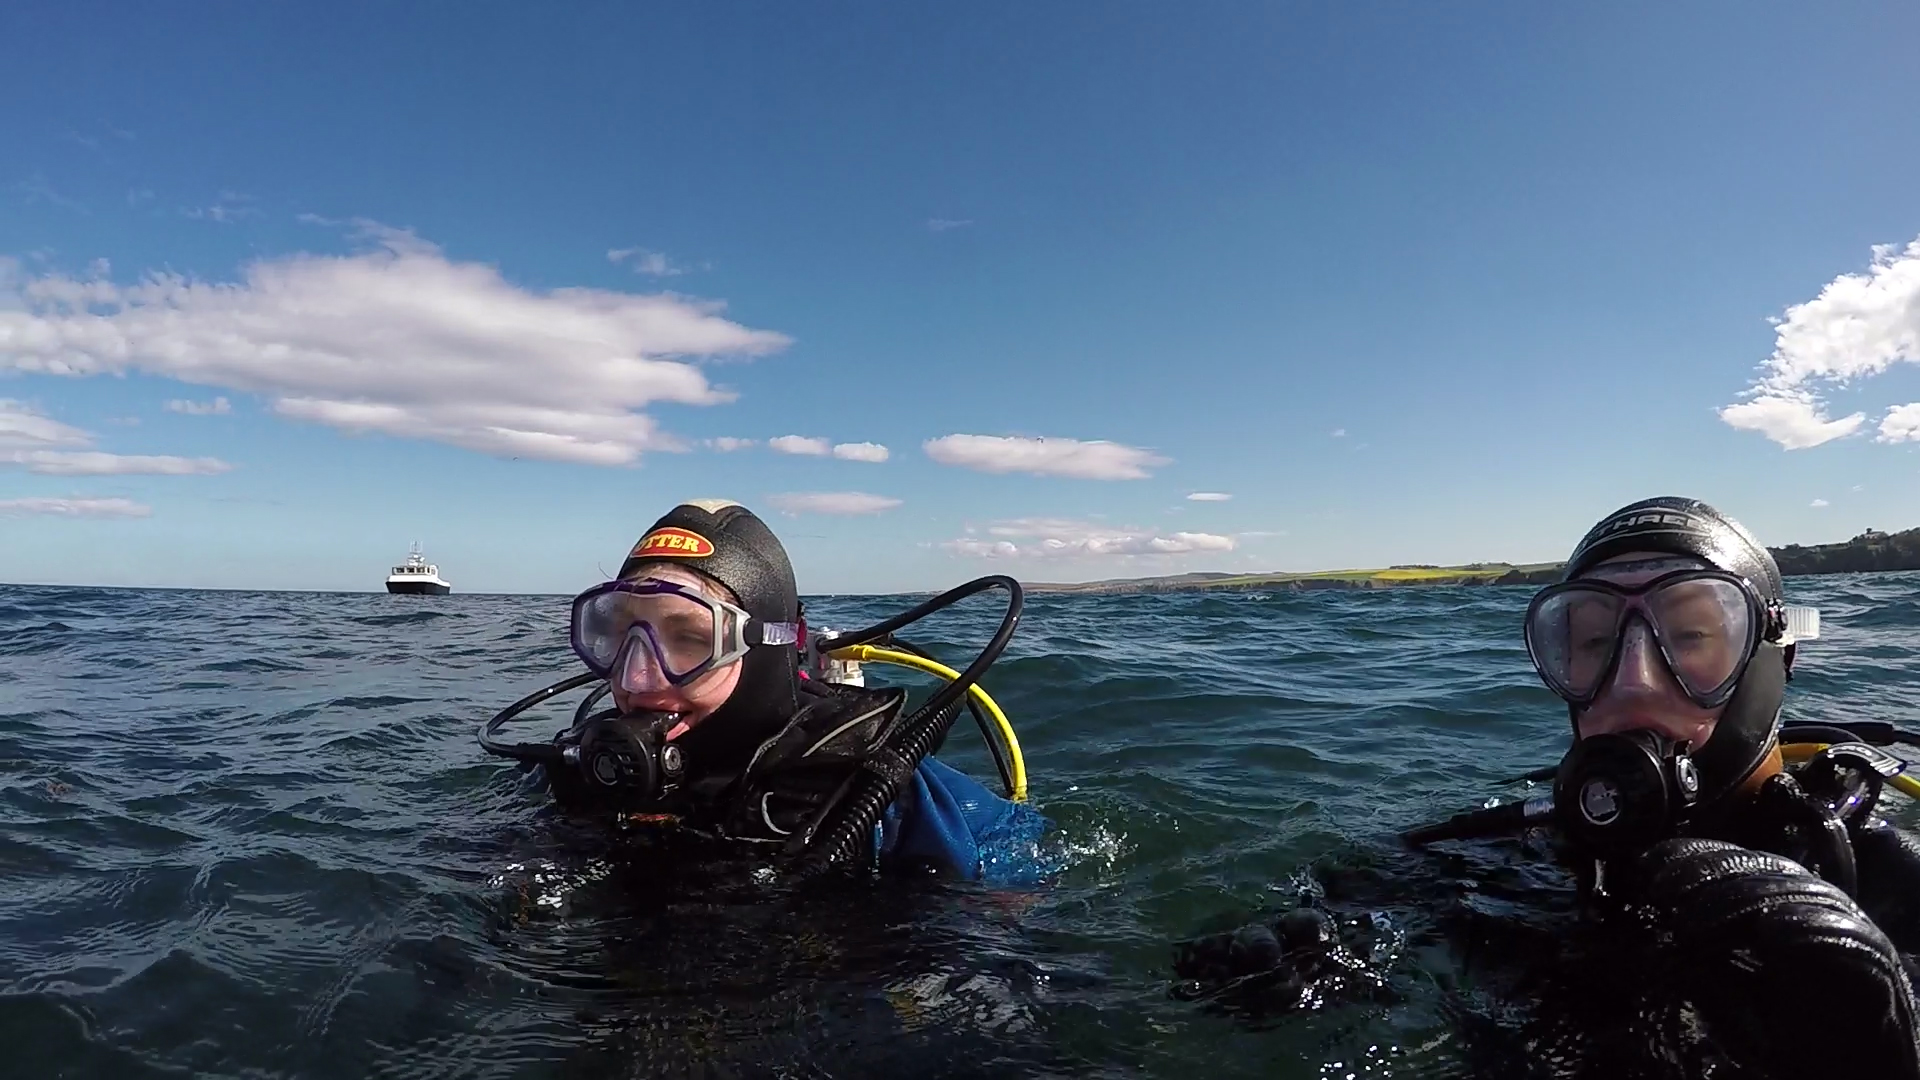 Scuba divers in Eyemouth, St Abbs